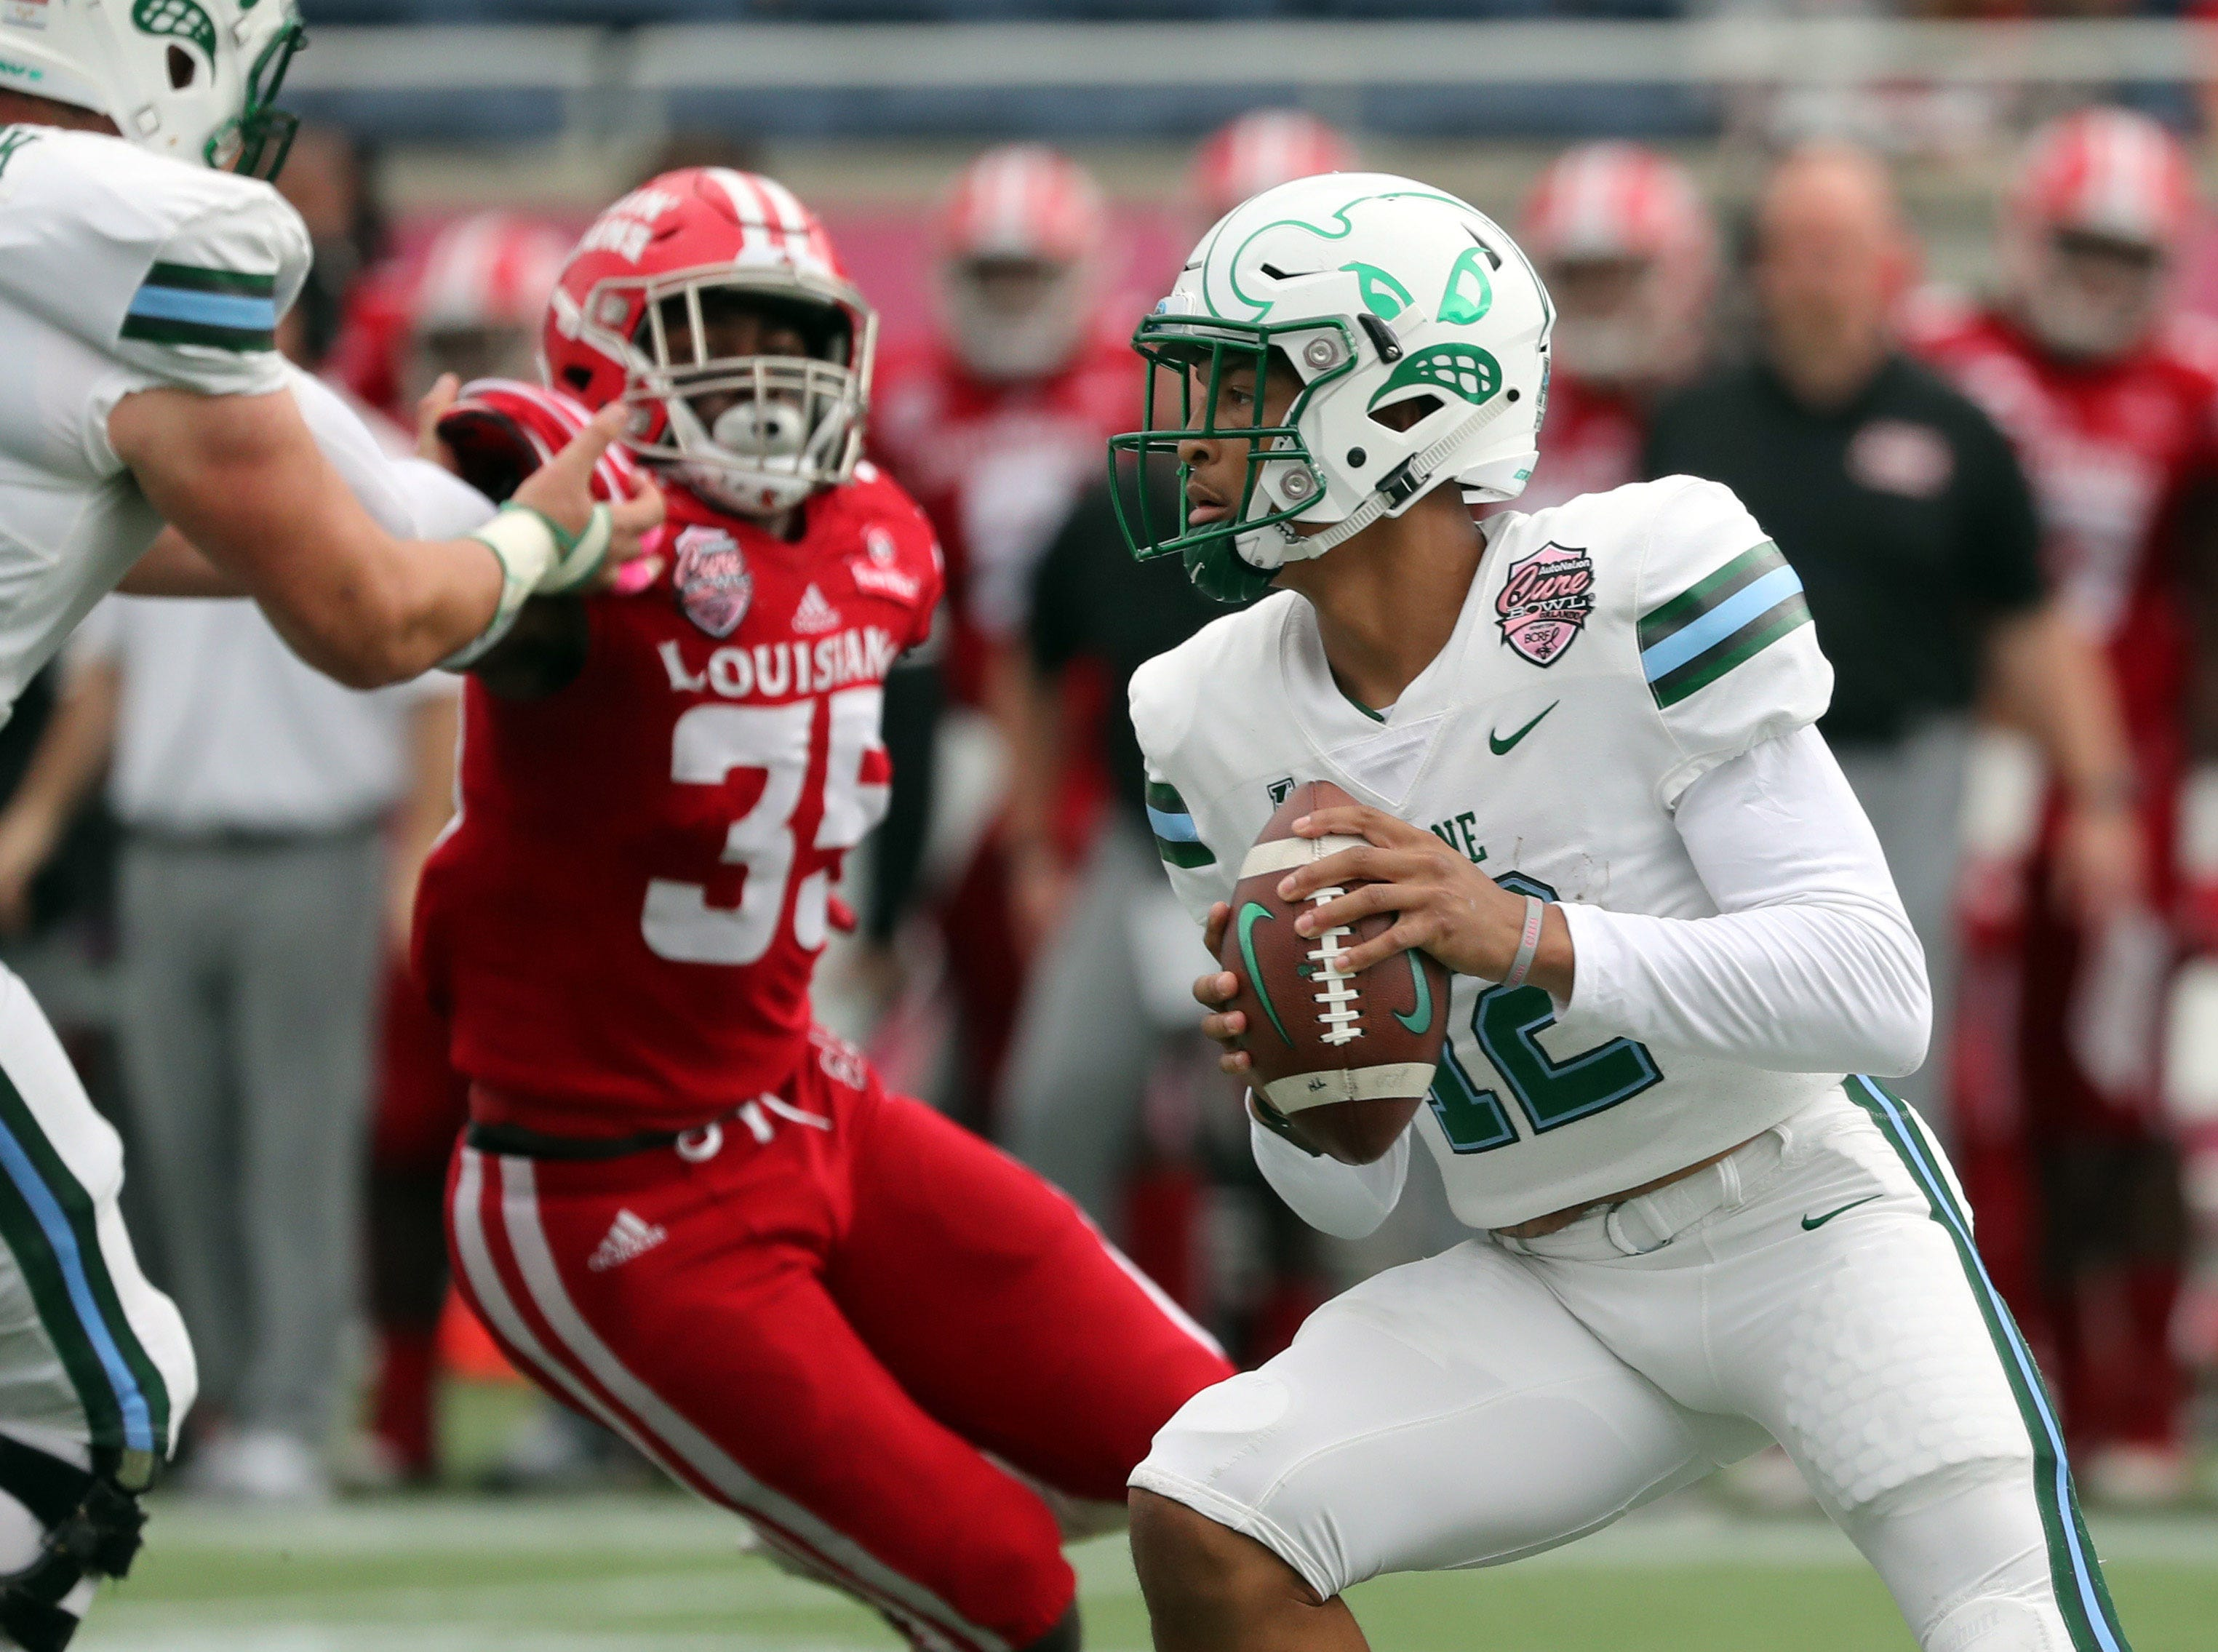 Dec 15, 2018; Orlando, FL, USA; Tulane Green Wave quarterback Justin McMillan (12) prepares to throw the ball against the Louisiana-Lafayette Ragin Cajuns during the first half at Camping World Stadium. Mandatory Credit: Kim Klement-USA TODAY Sports